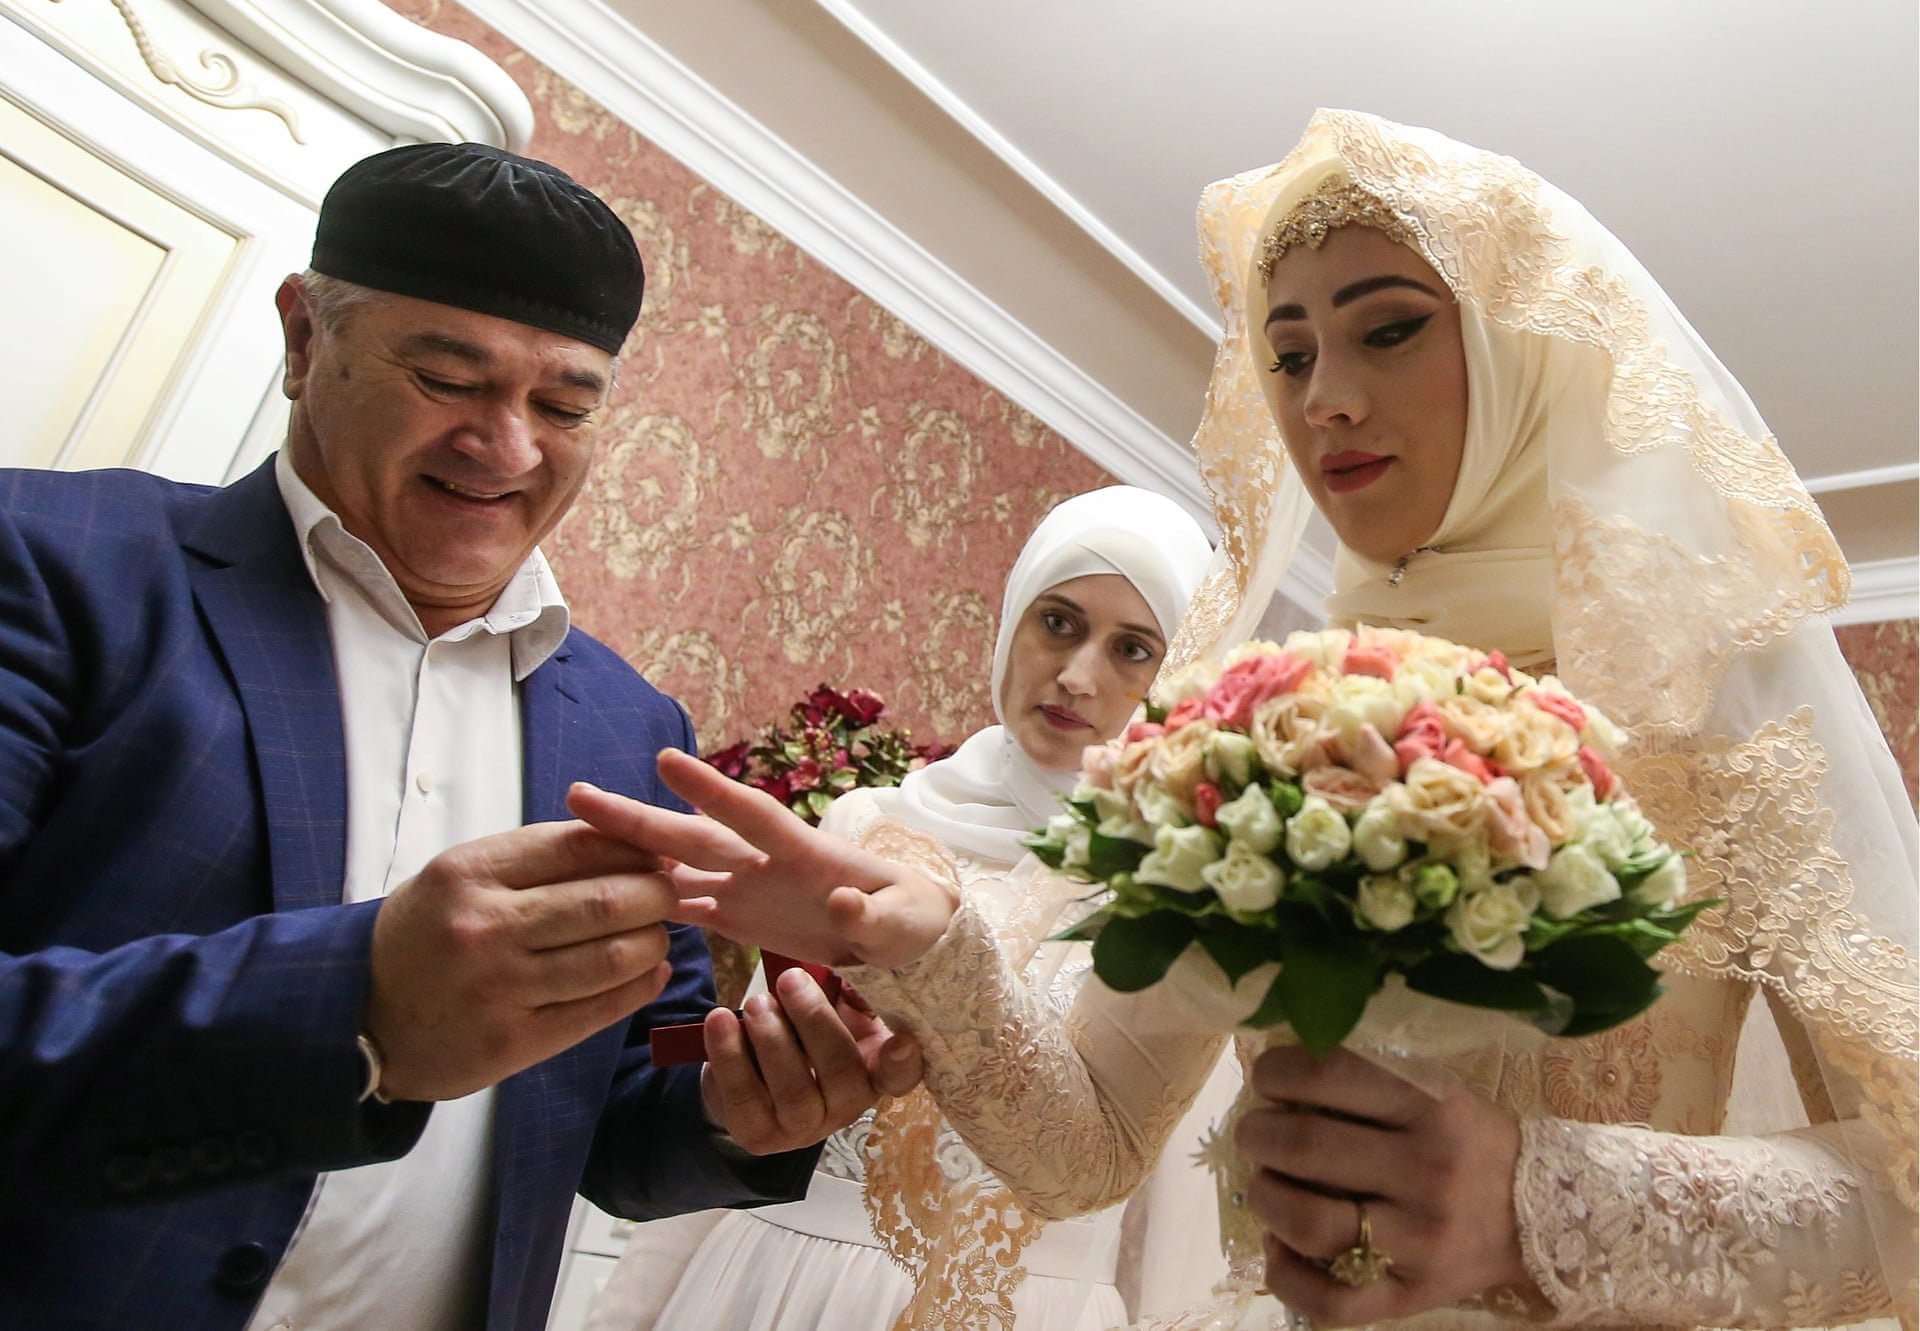 Chechen wedding - customs and traditions